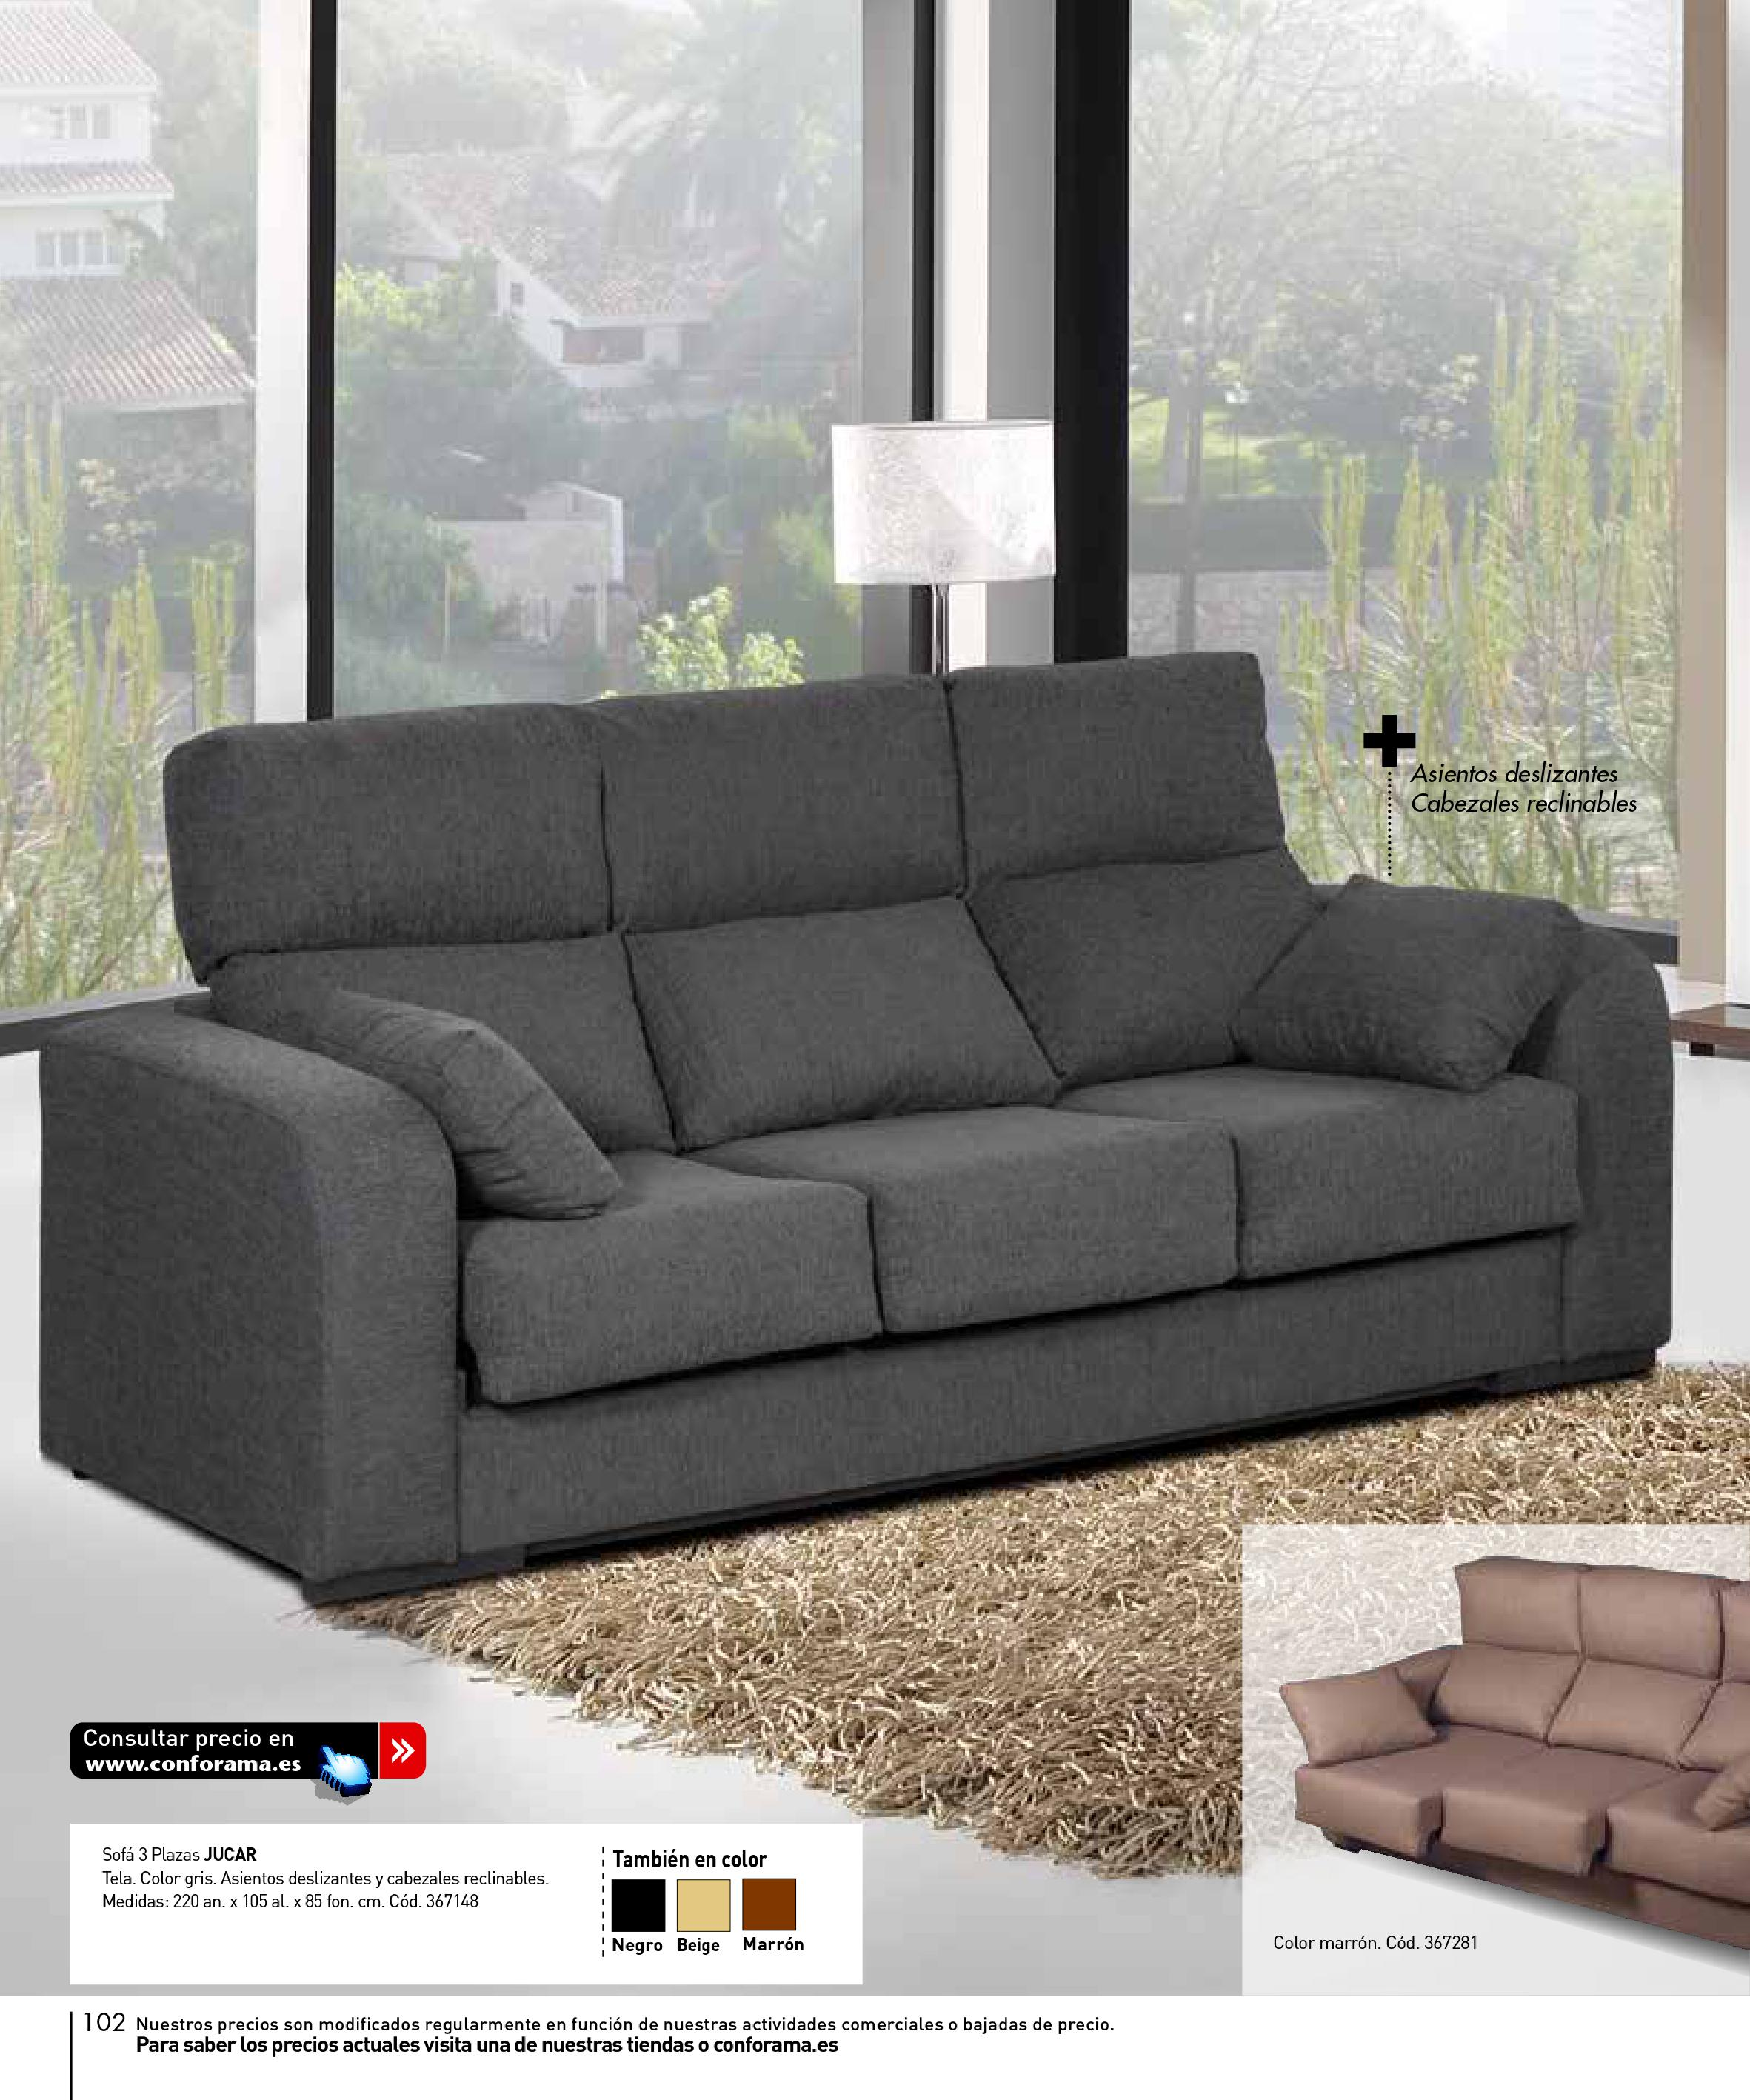 Sofas dos plazas conforama beautiful sofa dos plazas mies for Sofas 4 plazas conforama